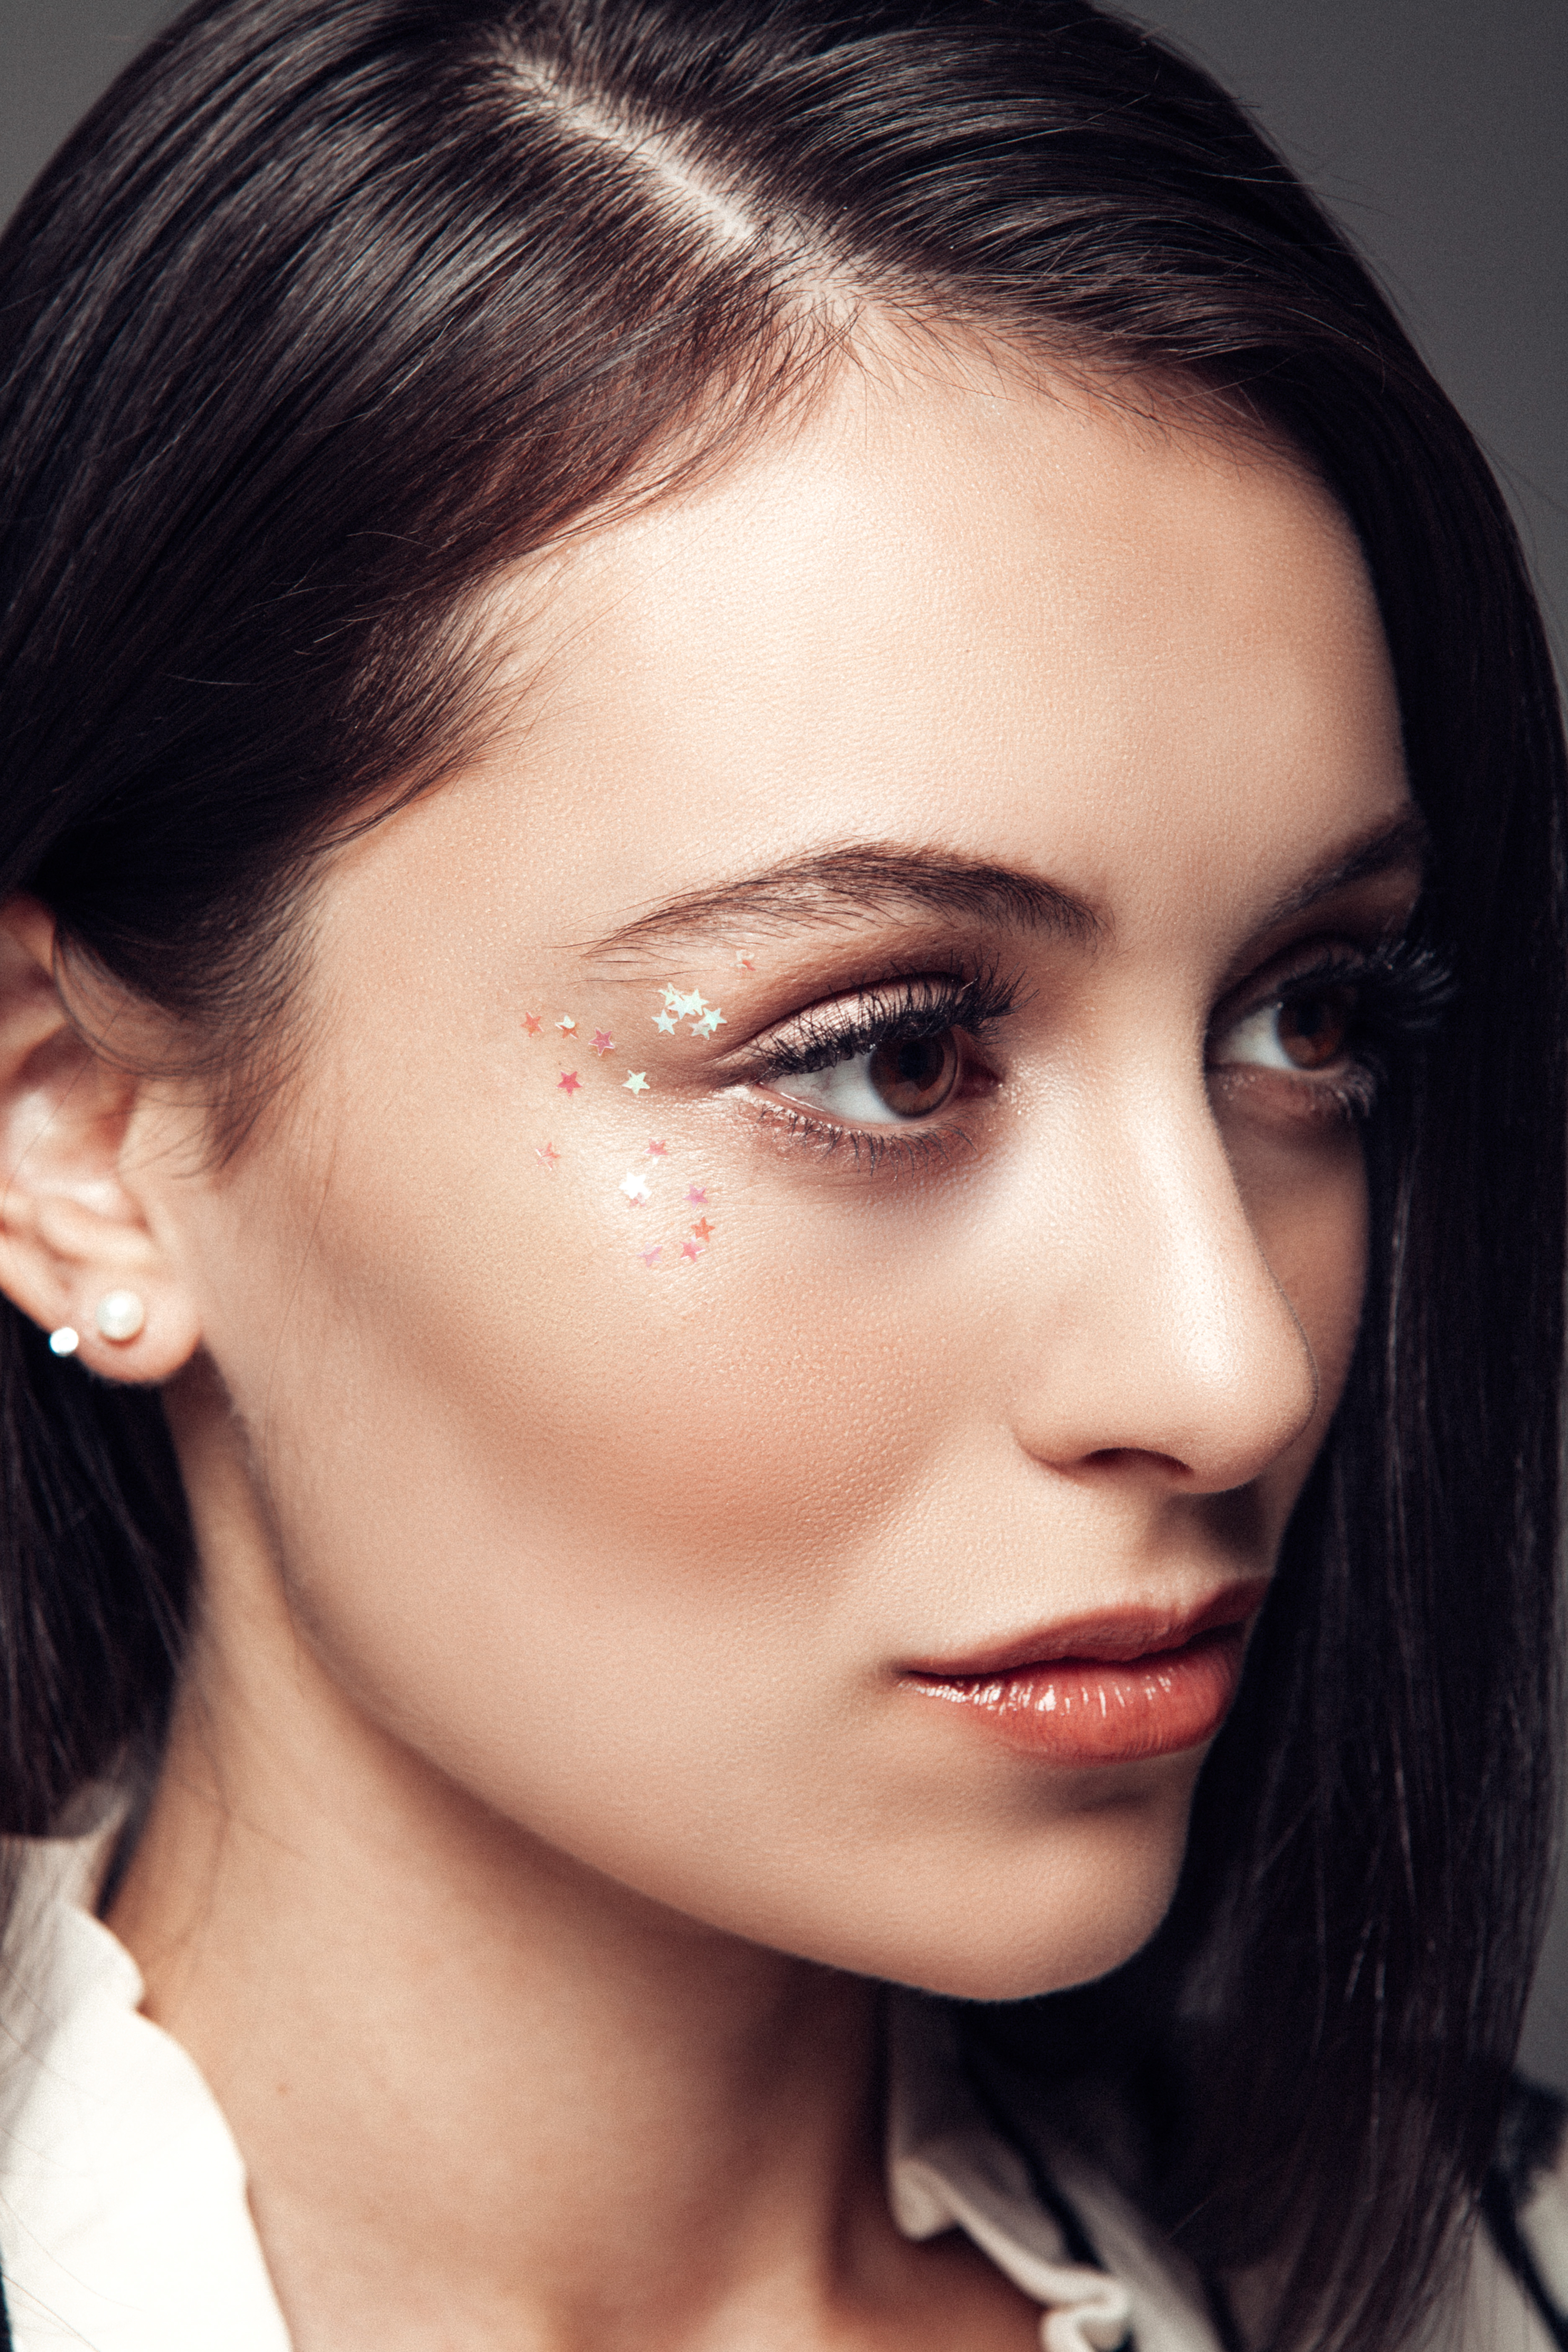 Marta x The Zoe Report New Year's Eve Beauty Looks